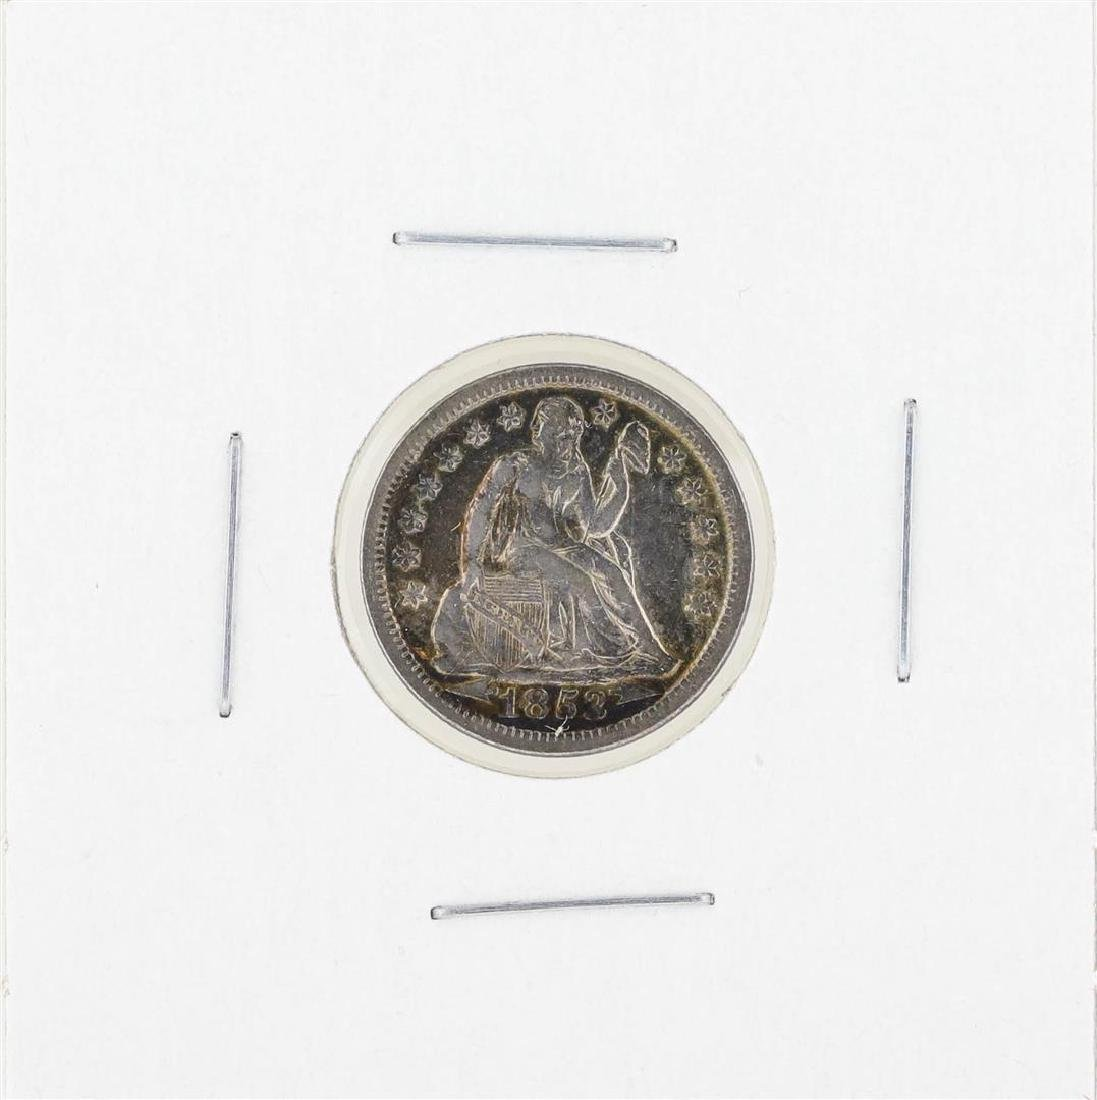 1853 Seated Dime Coin